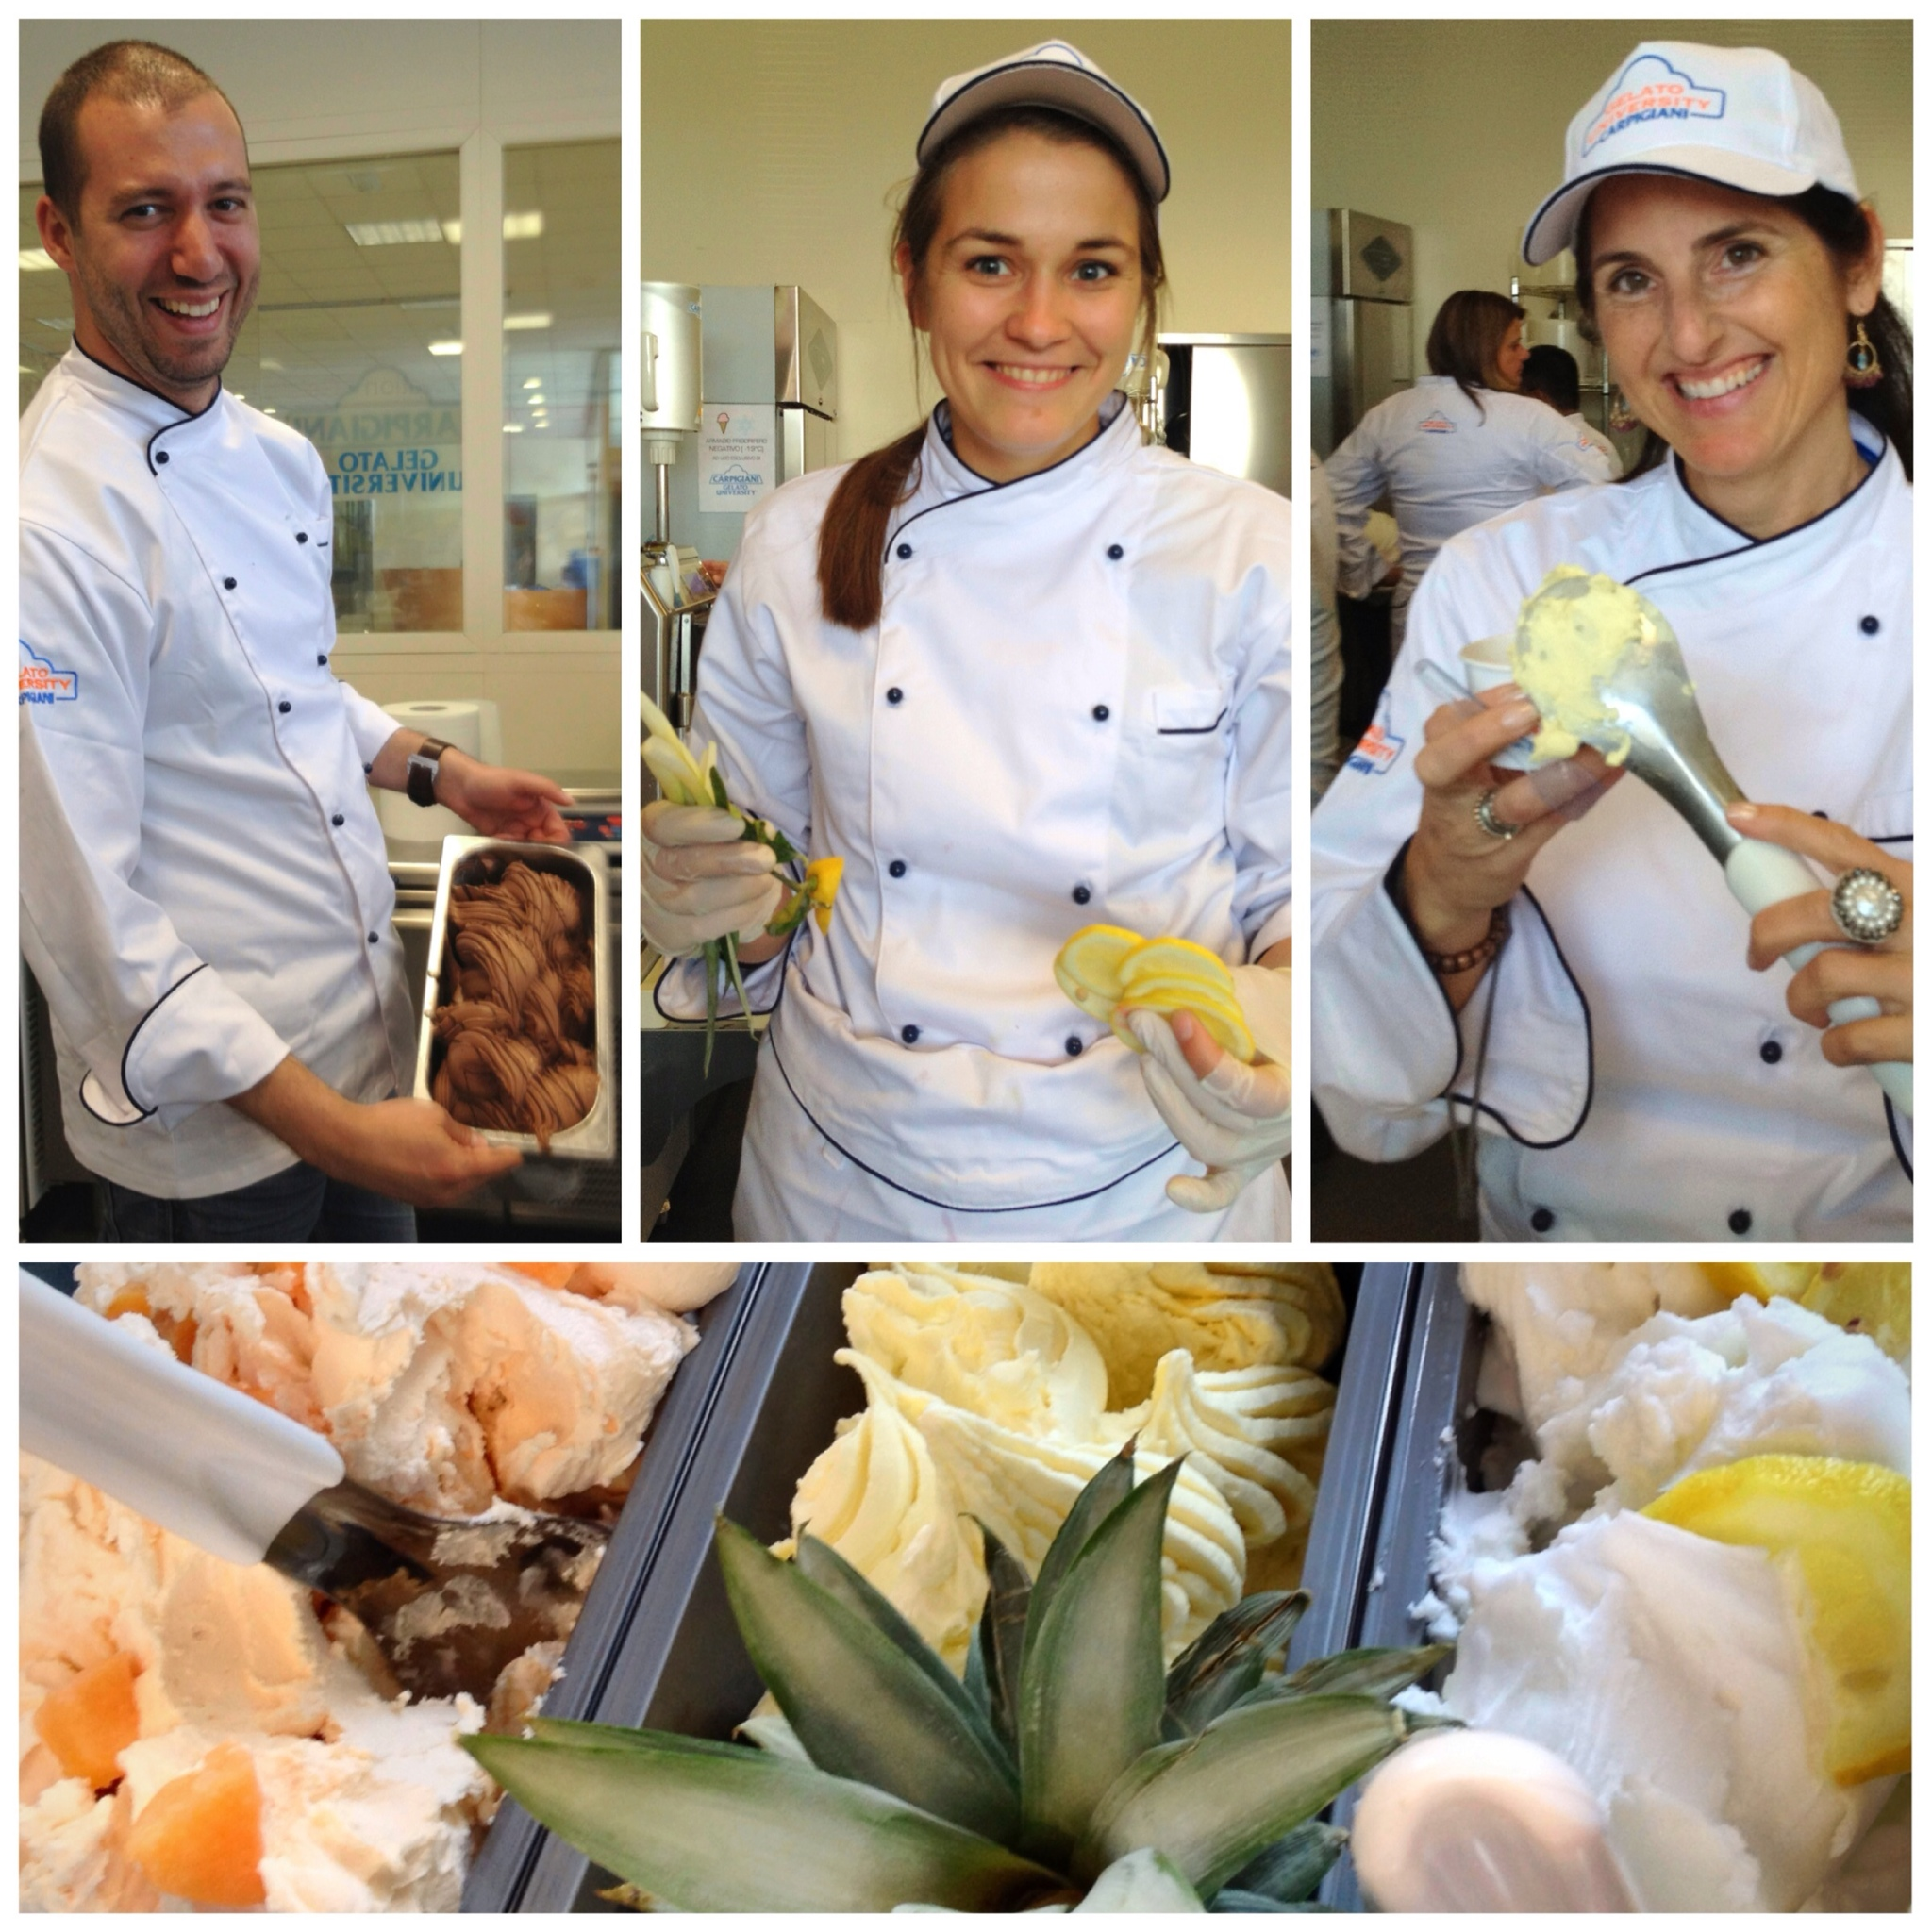 Gelato University students (and @suuperg on the right) master the art of the perfect artisan Gelato